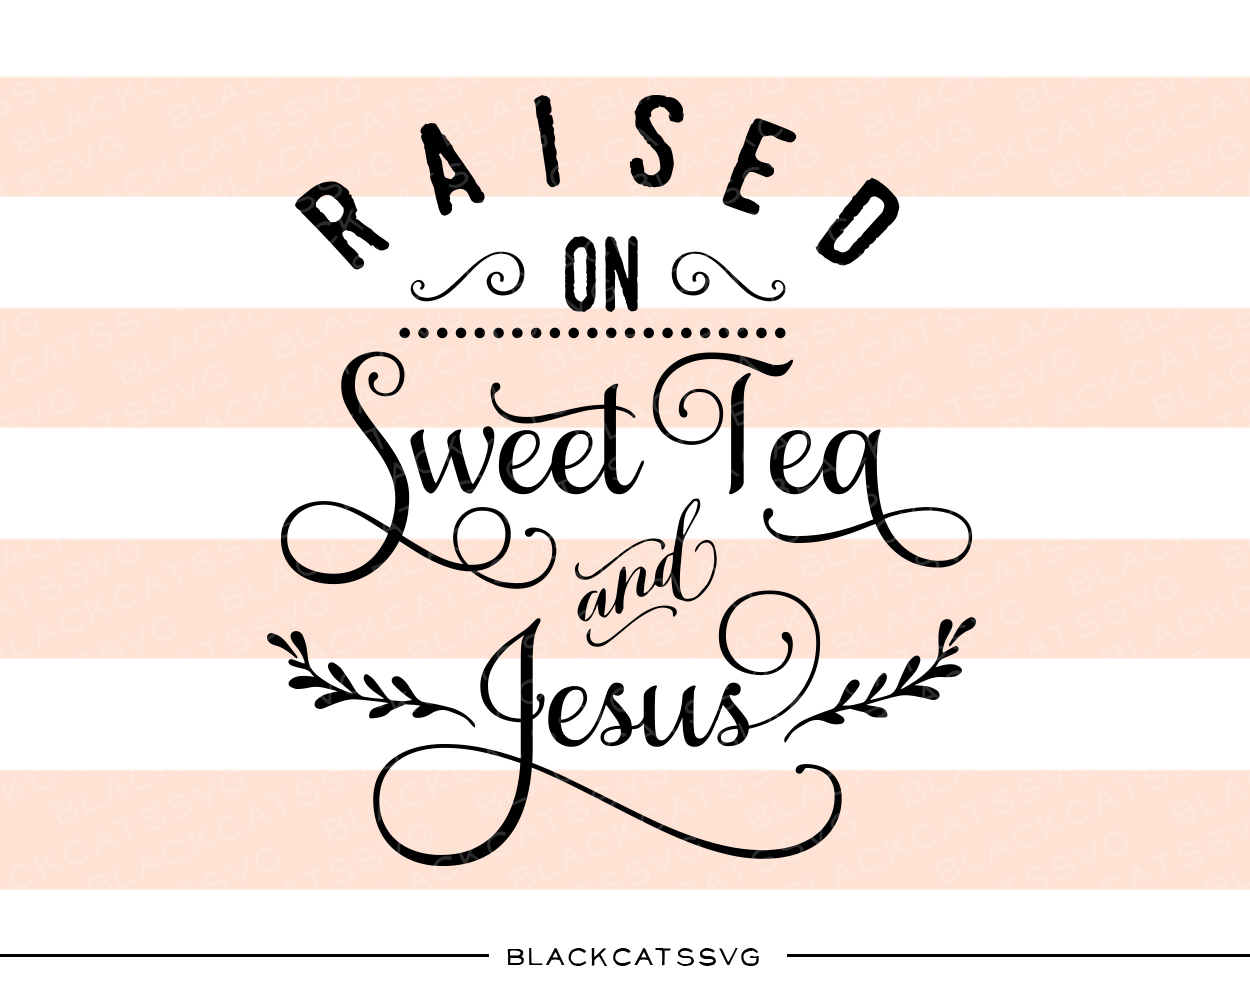 Raised on Sweet Tea and Jesus Religious Craft Cut File By BlackCatsSVG